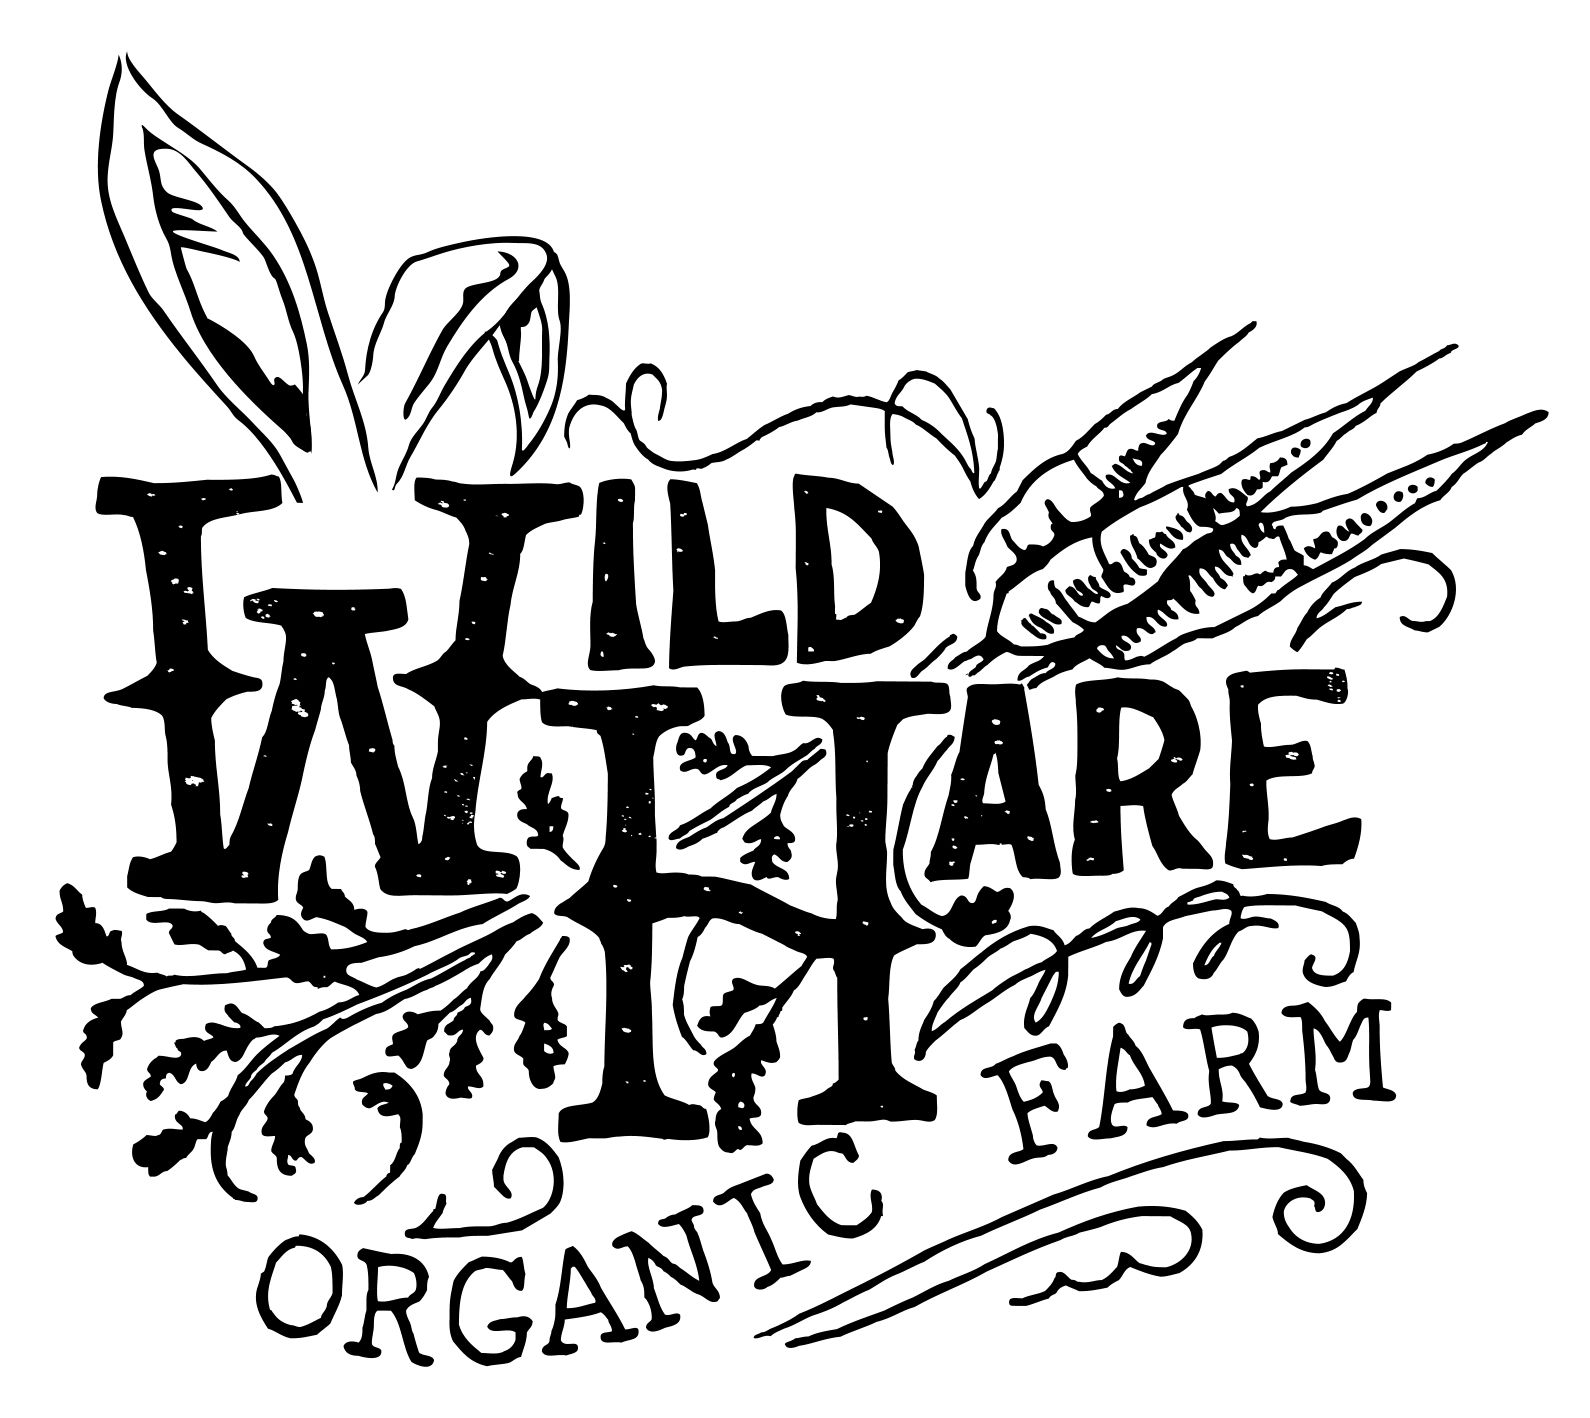 10/16/15 - It was a perfect day to visit the Organic Farm!